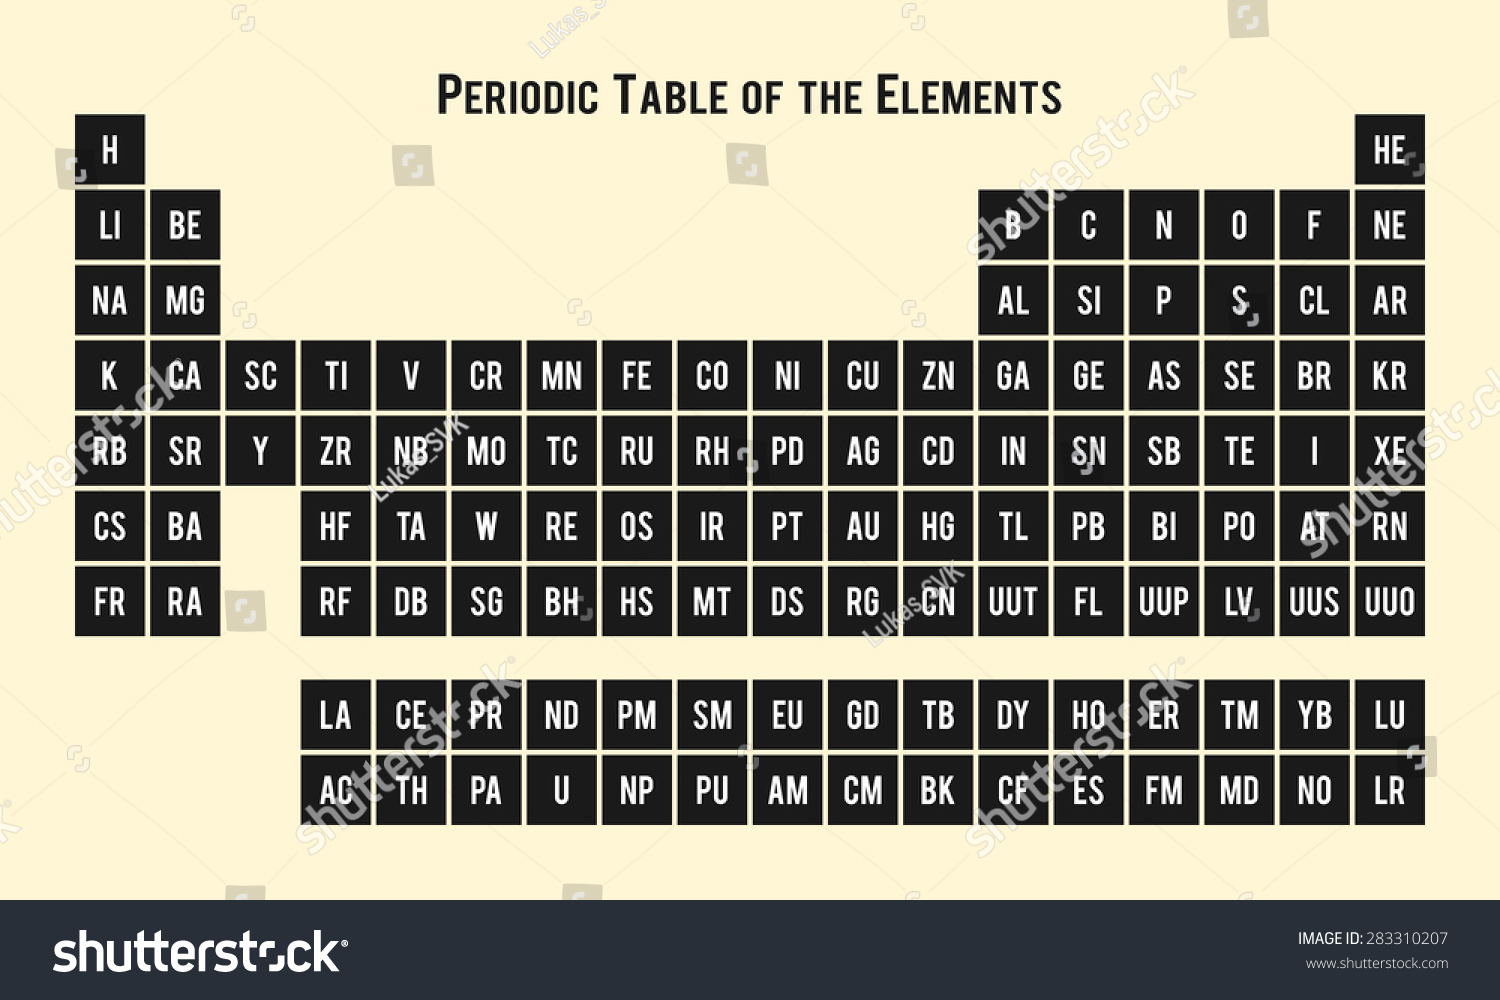 Periodic table elements chemical symbols stock vector 283310207 periodic table of the elements chemical symbols buycottarizona